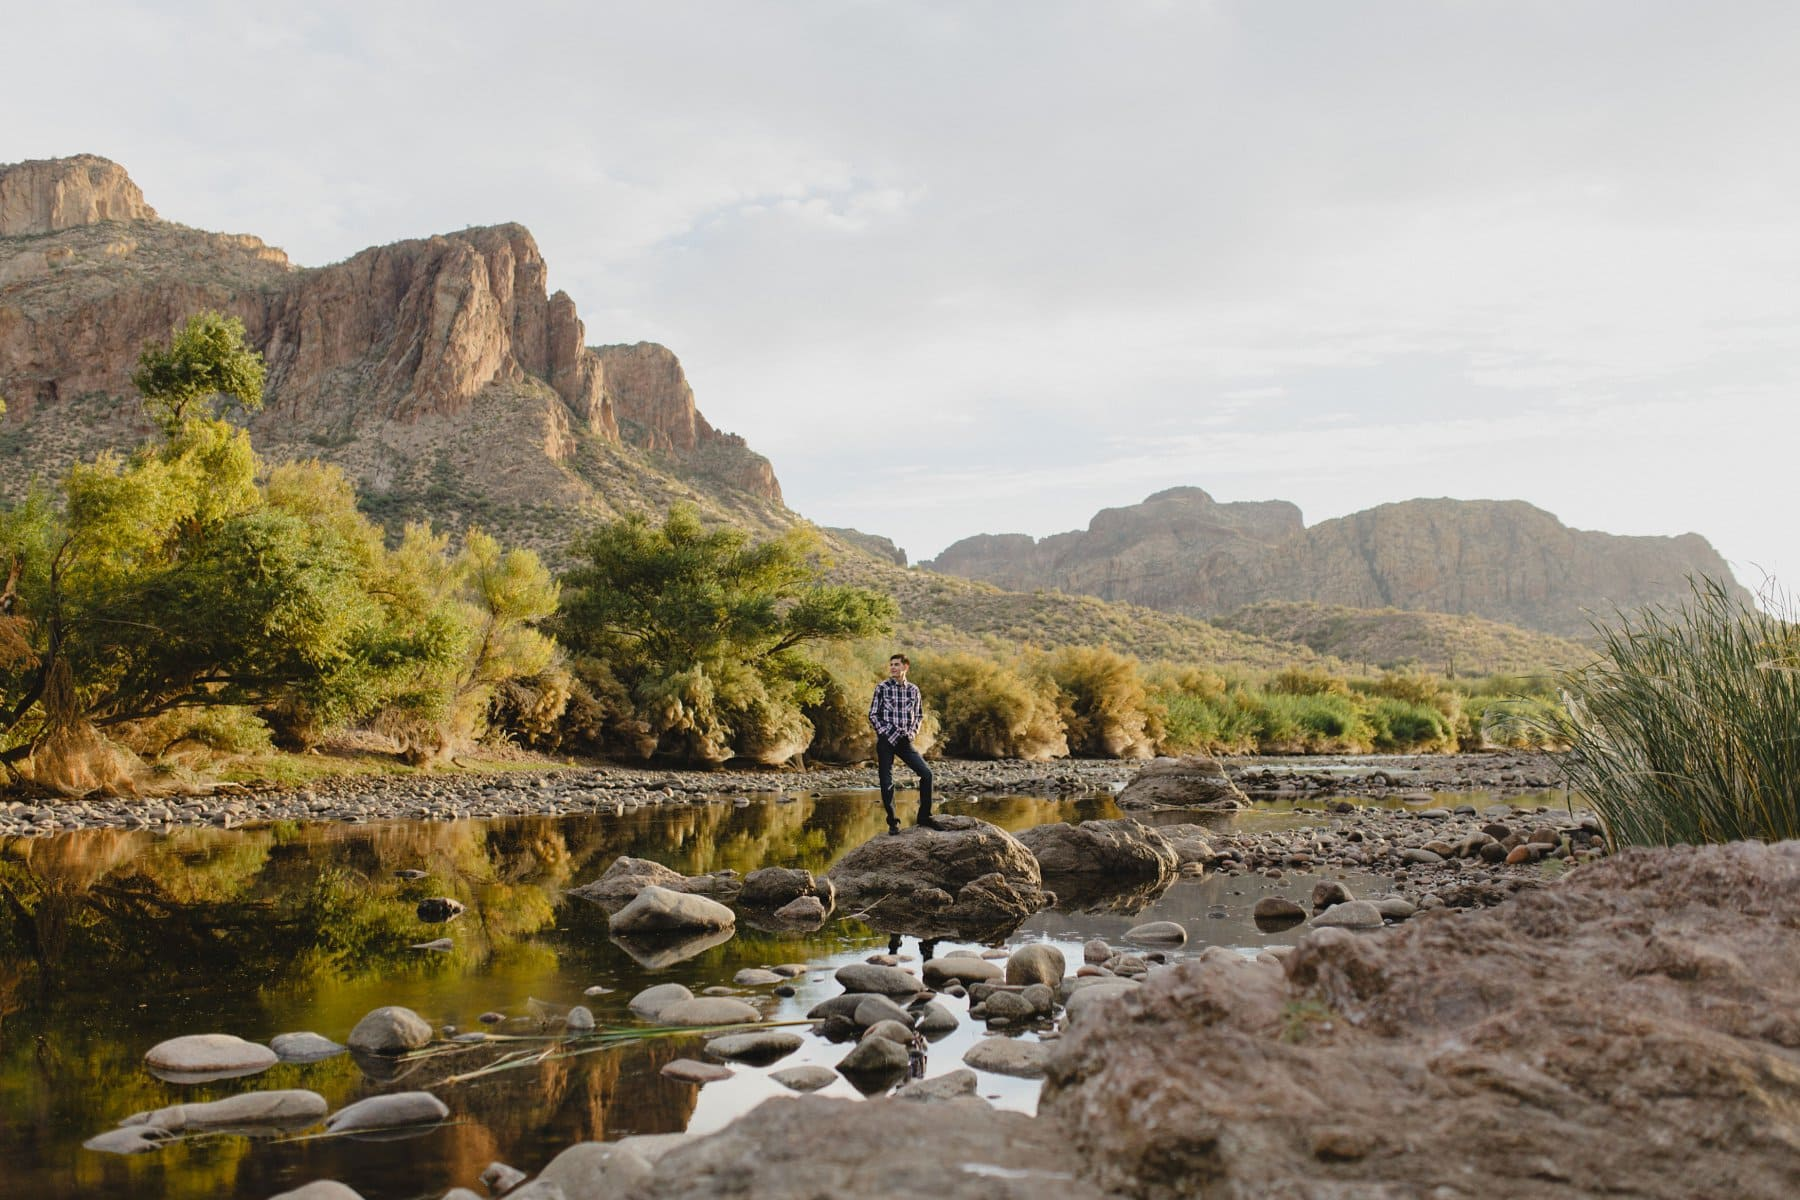 high school senior boy in scenic nature Arizona Salt River